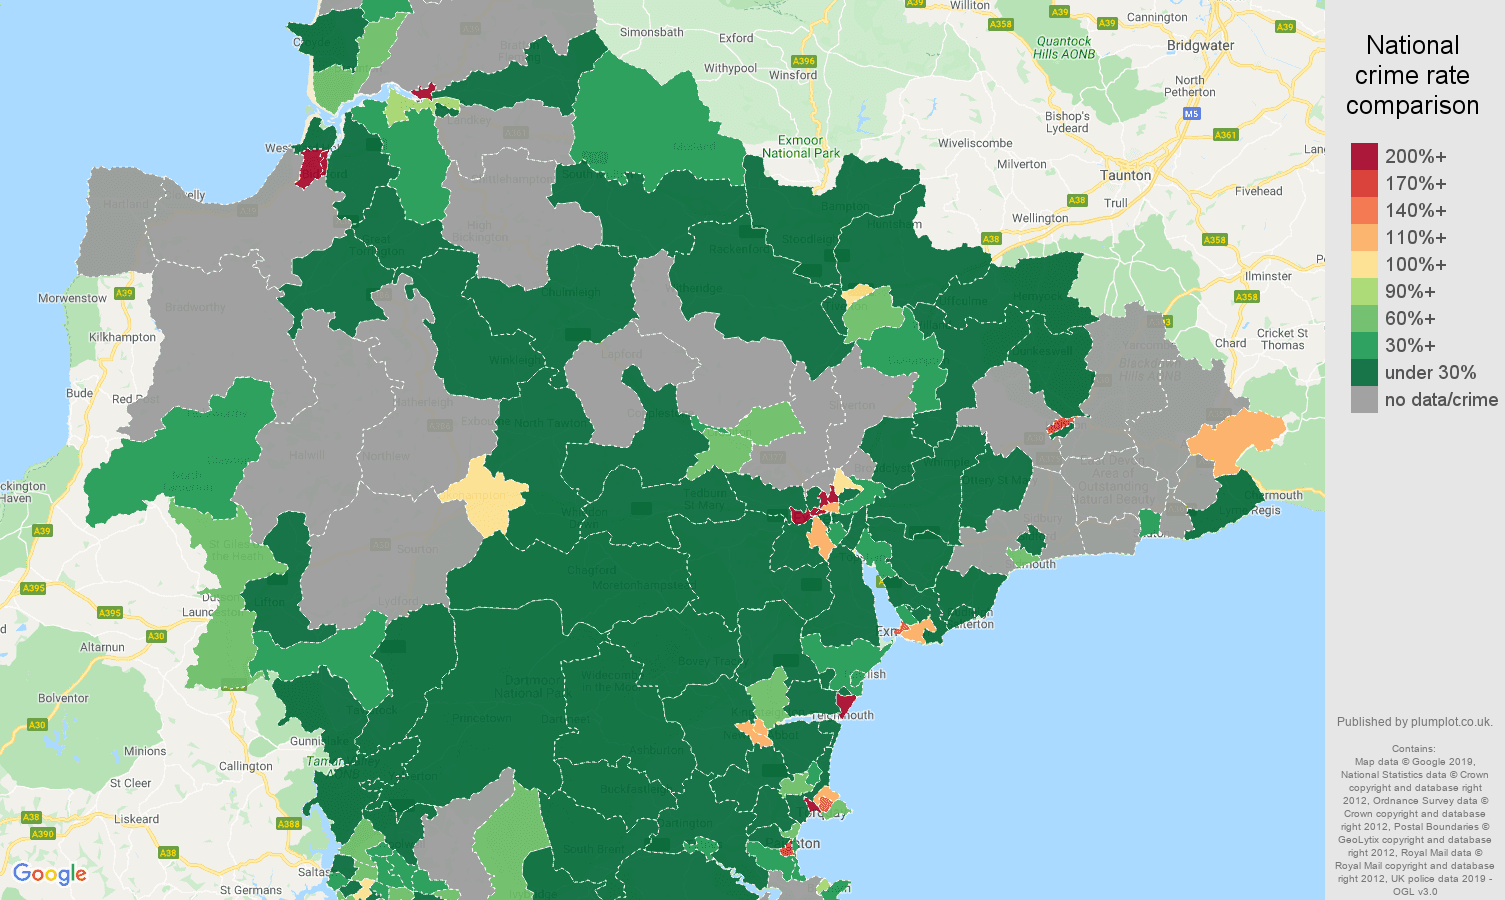 Devon shoplifting crime rate comparison map